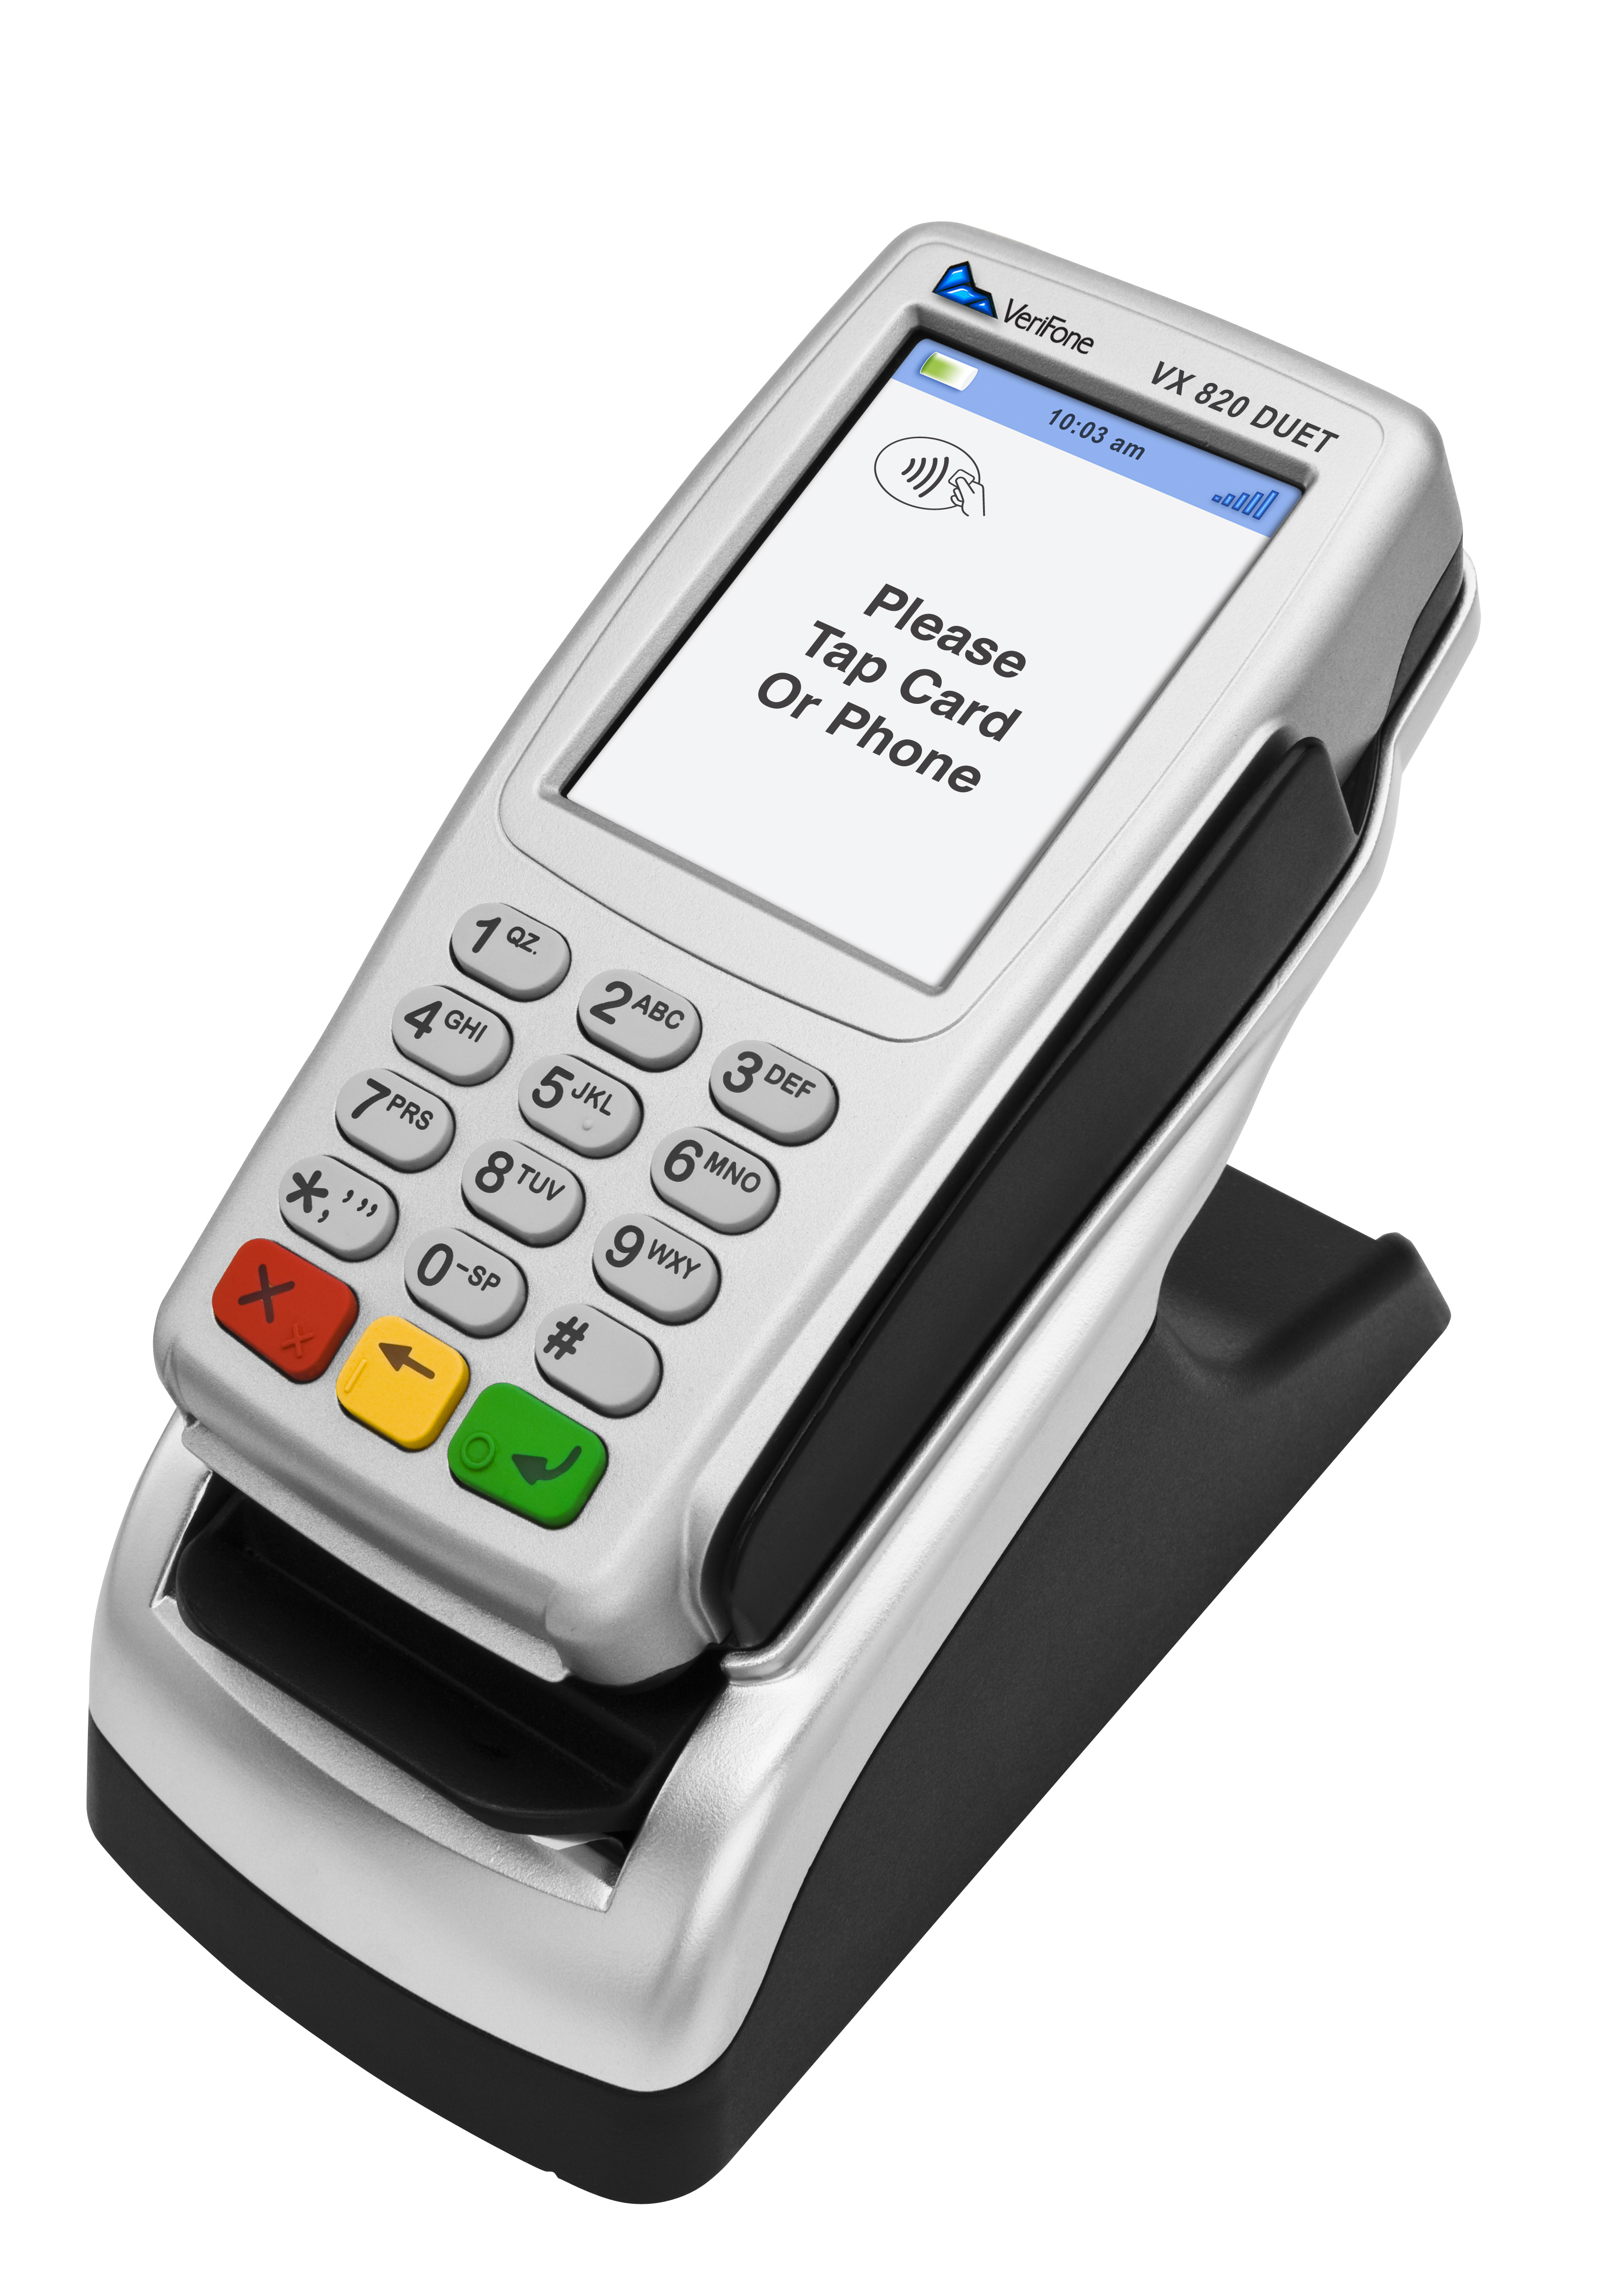 Heron Foods Selects Verifoneu0027s P2PE Certified Payment As A Service To  Protect Cardholder Data And Enhance The Customer Experience | Business Wire